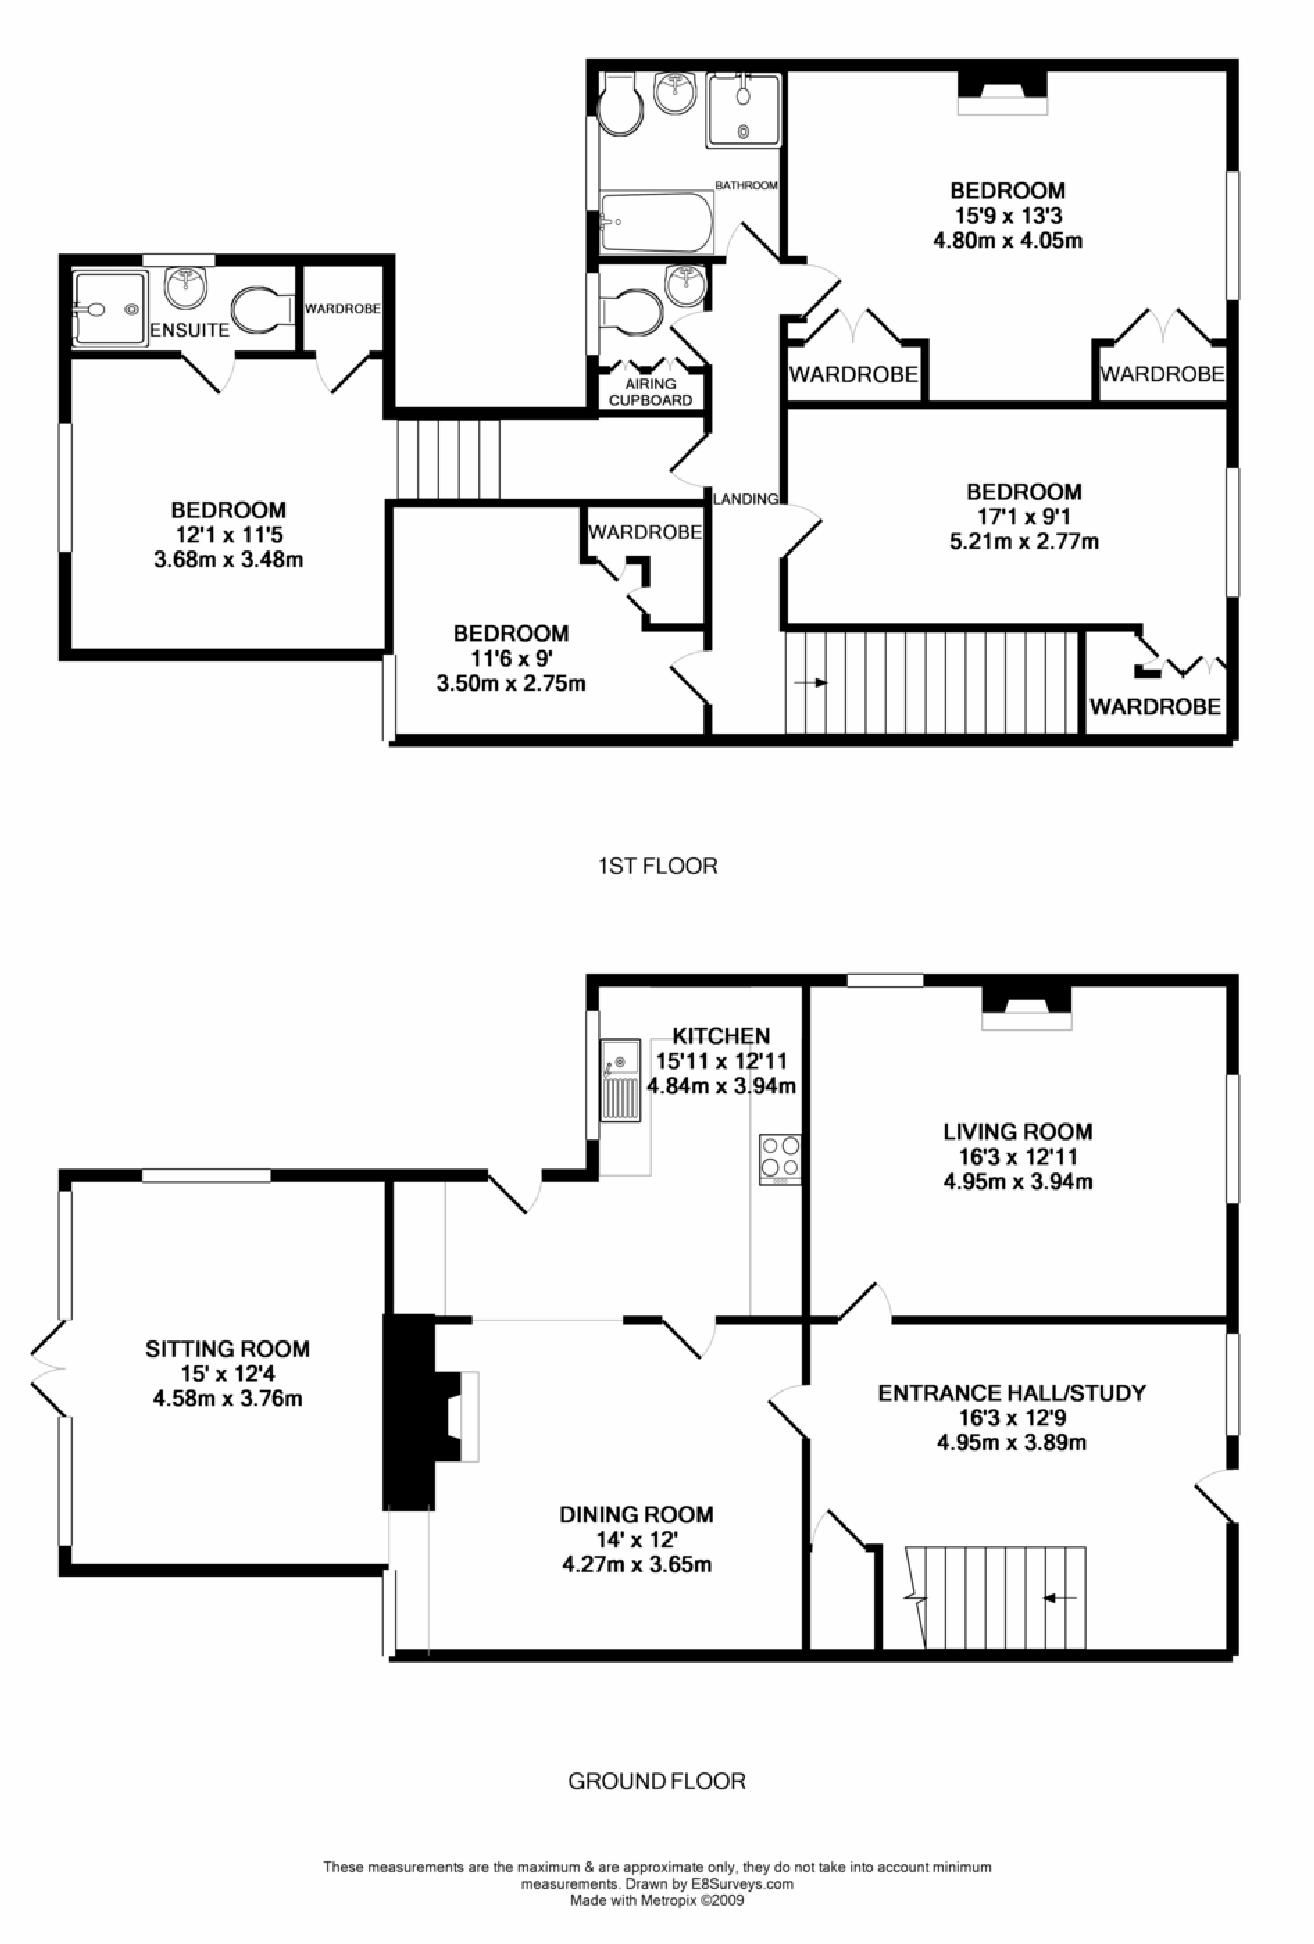 Barndominium Floor Plan Ideas To Make Your Own Home Barndominium Floor Plans Small Barndomin Barndominium Floor Plans Bedroom House Plans Barndominium Plans